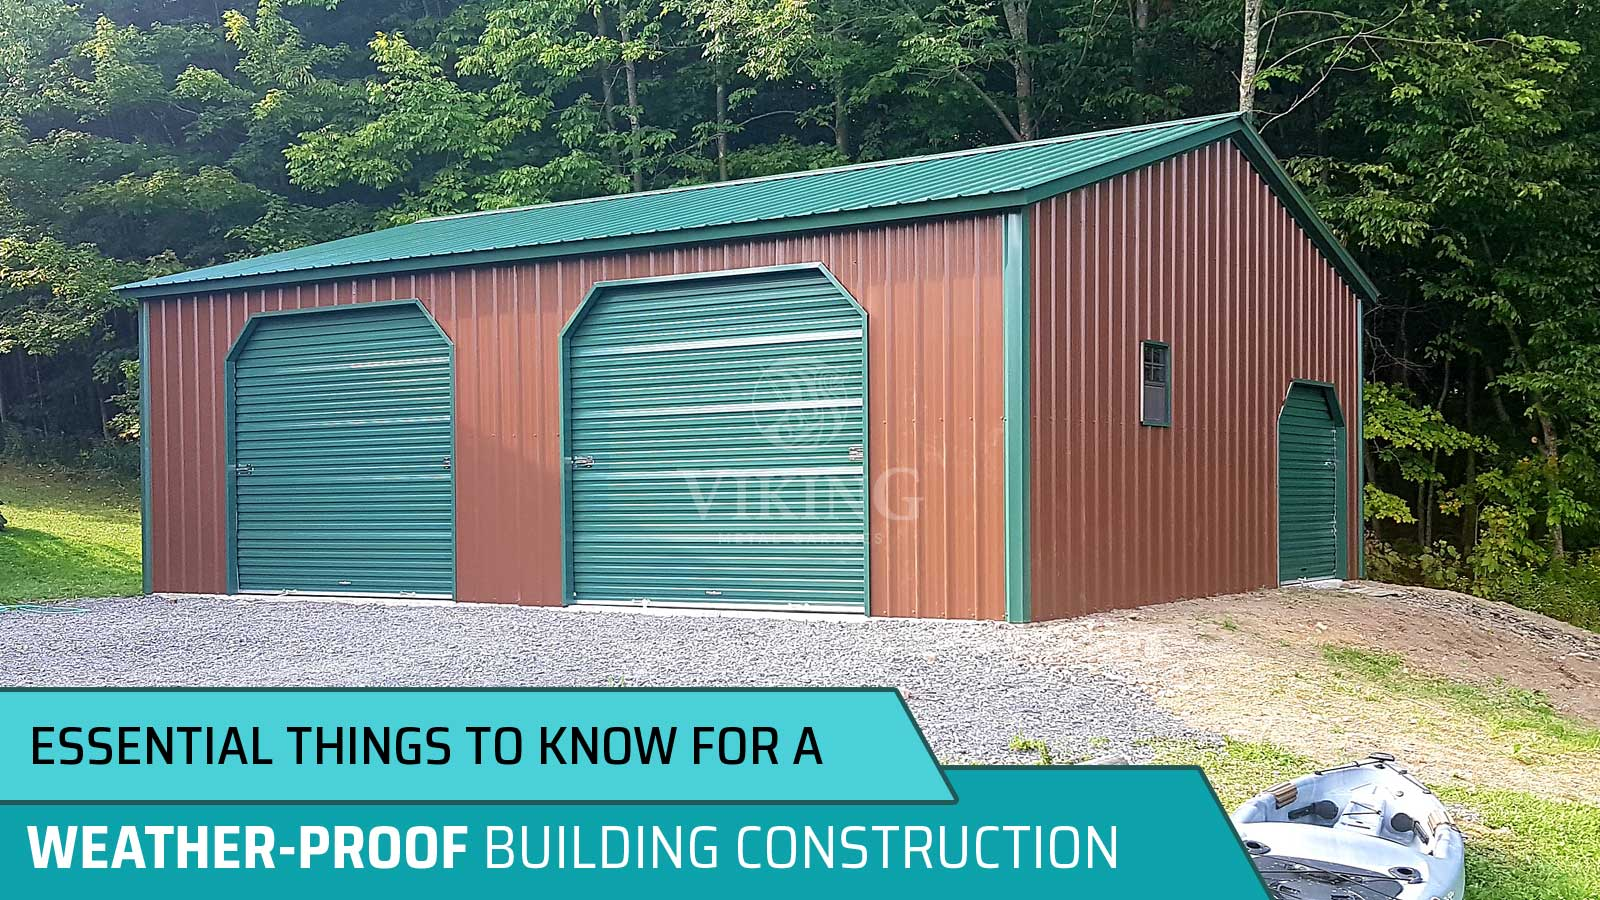 Essential Things to Know for a Weather-proof Building Construction